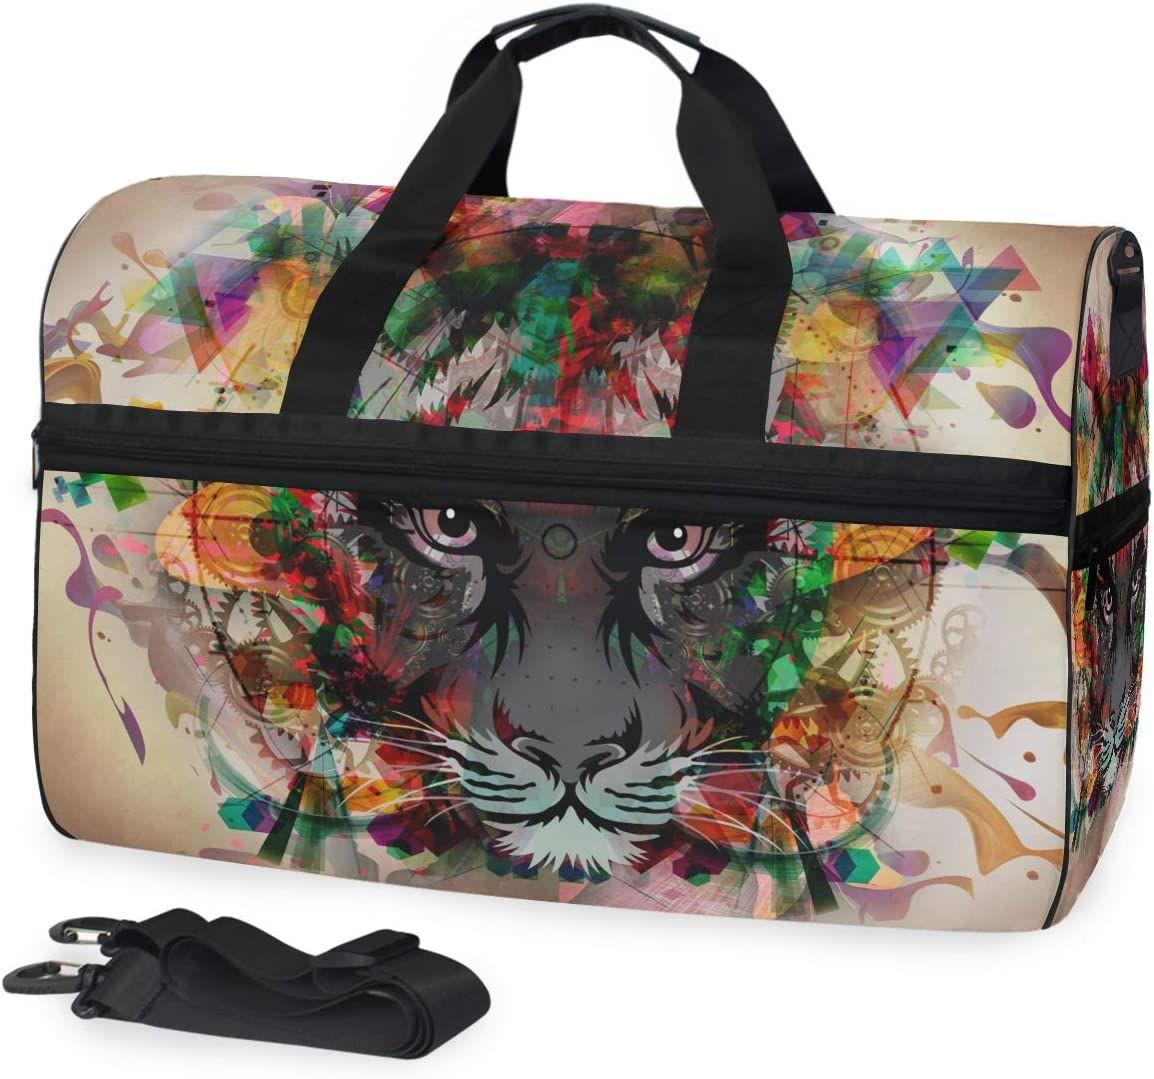 Sports Swim Gym Tampa Mall Bag Ranking TOP11 with Tiger Weekende Shoes Animal Compartment